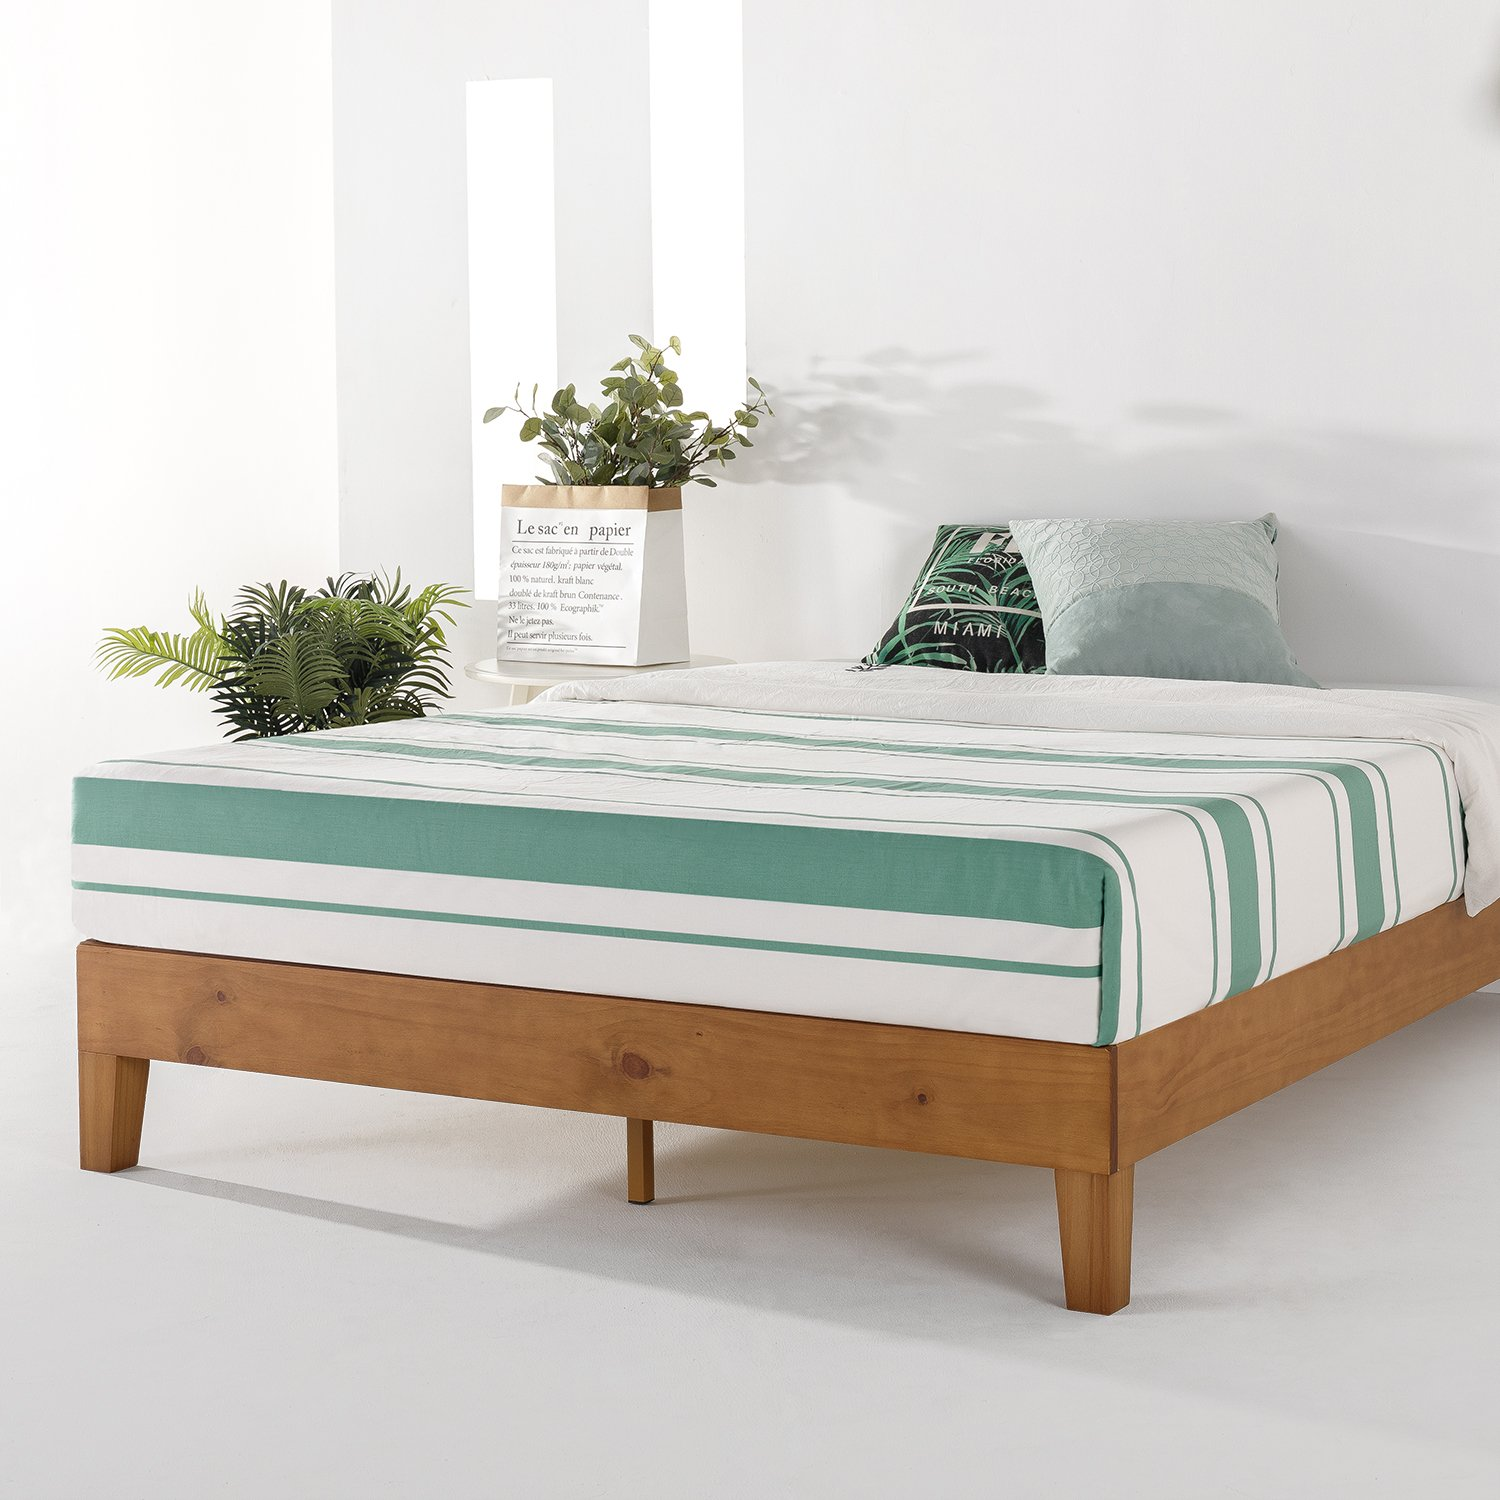 Mellow 12 Solid Wood Platform Bed Frame w Grand Wooden Slat No Box Spring Needed , Queen, Natural